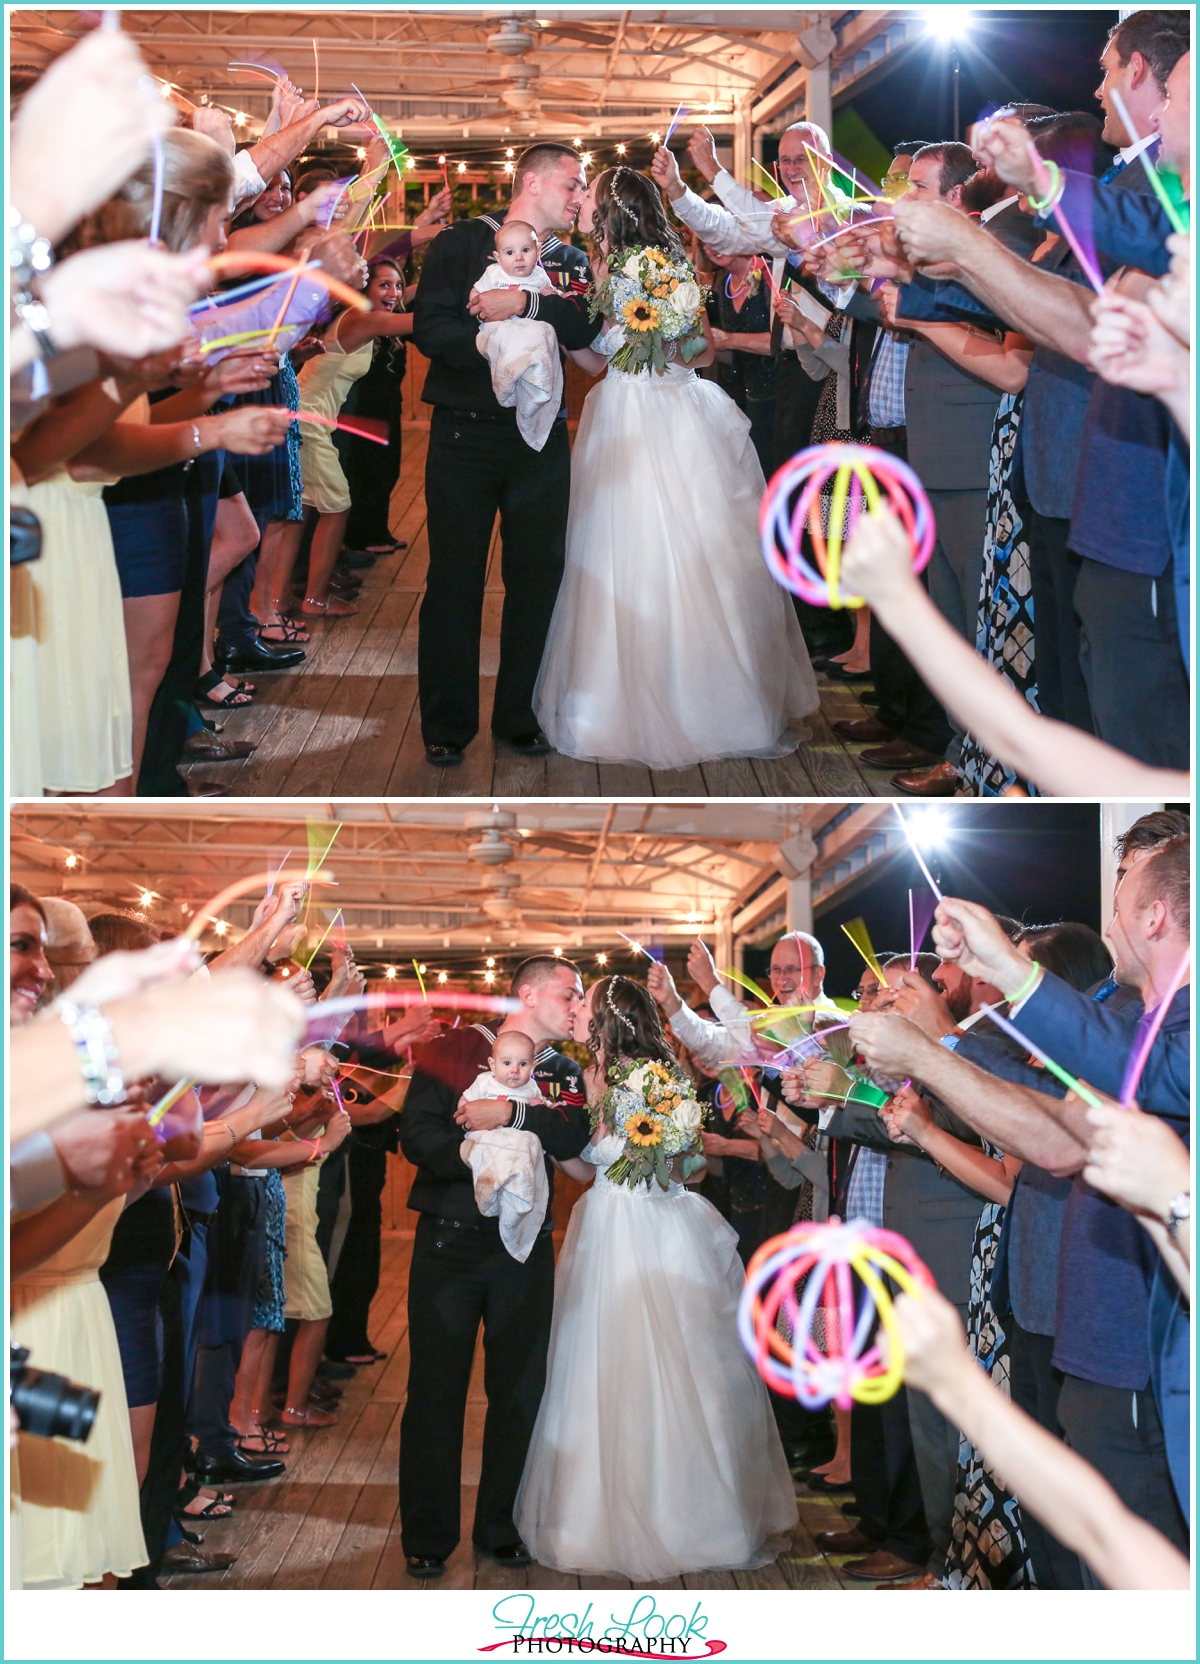 glow stick grand exit wedding